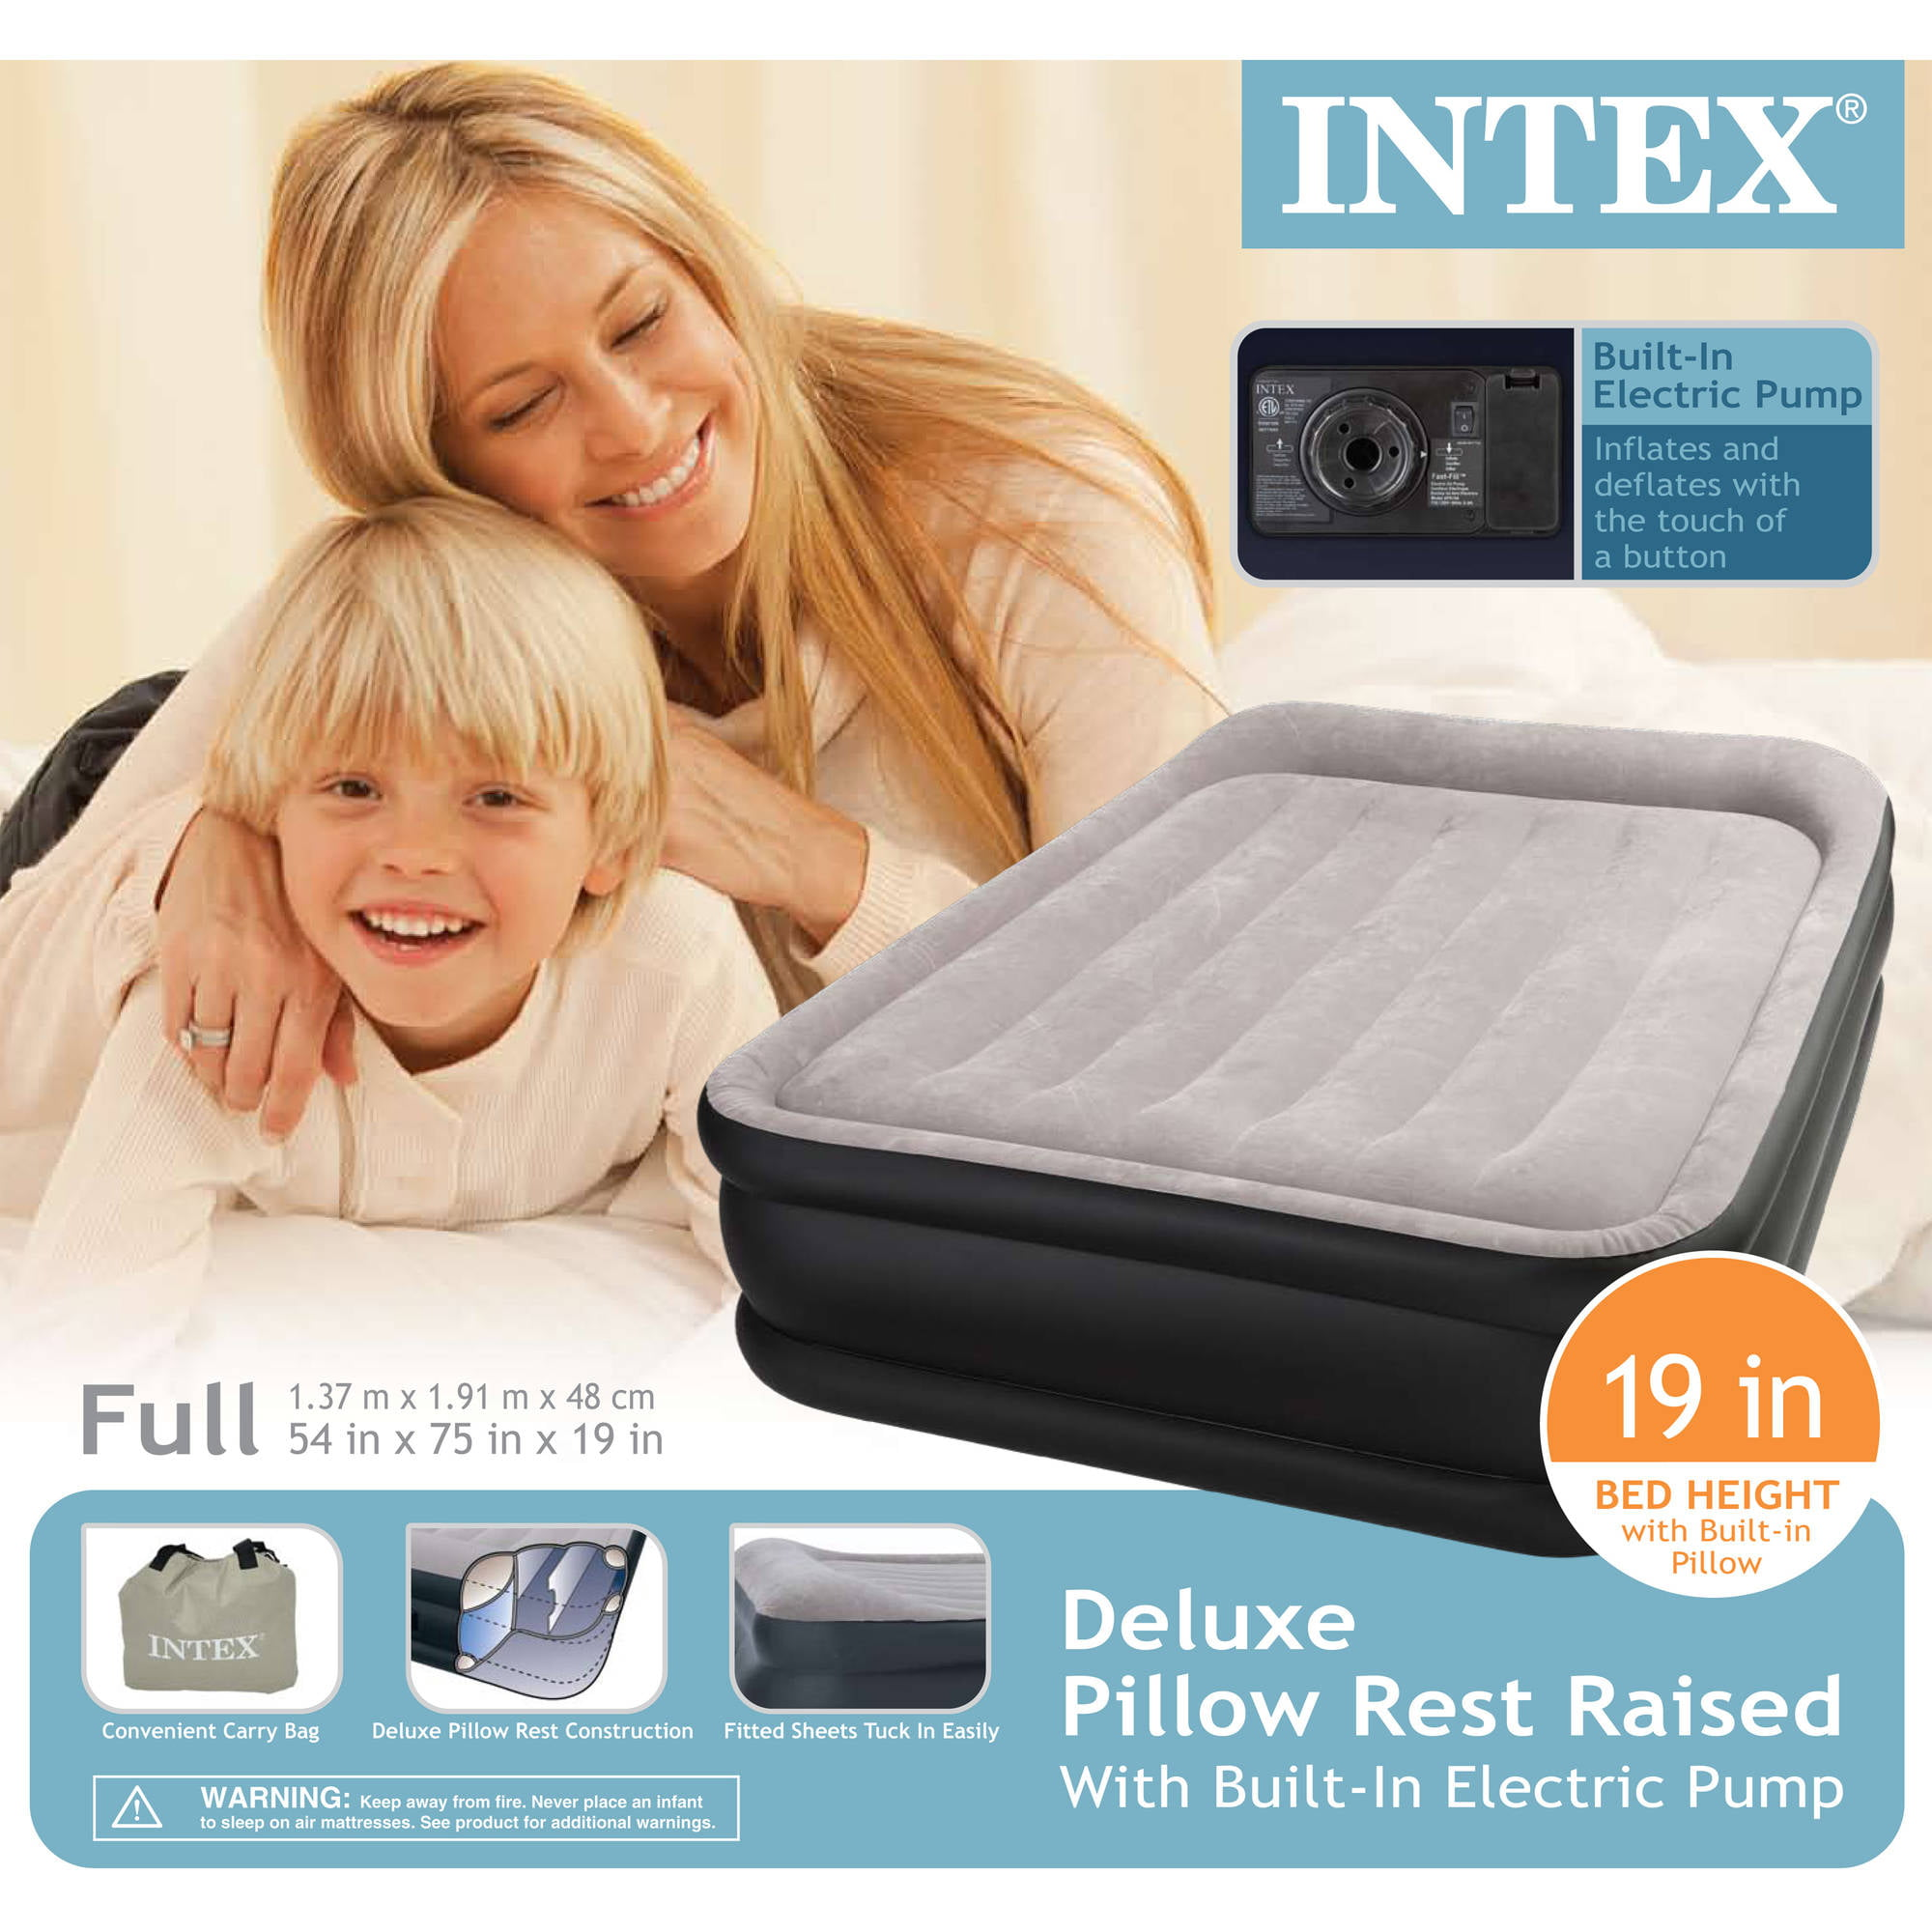 air mattress with pillow Intex Deluxe Raised Pillow Rest Airbed Mattress with Built In Pump  air mattress with pillow